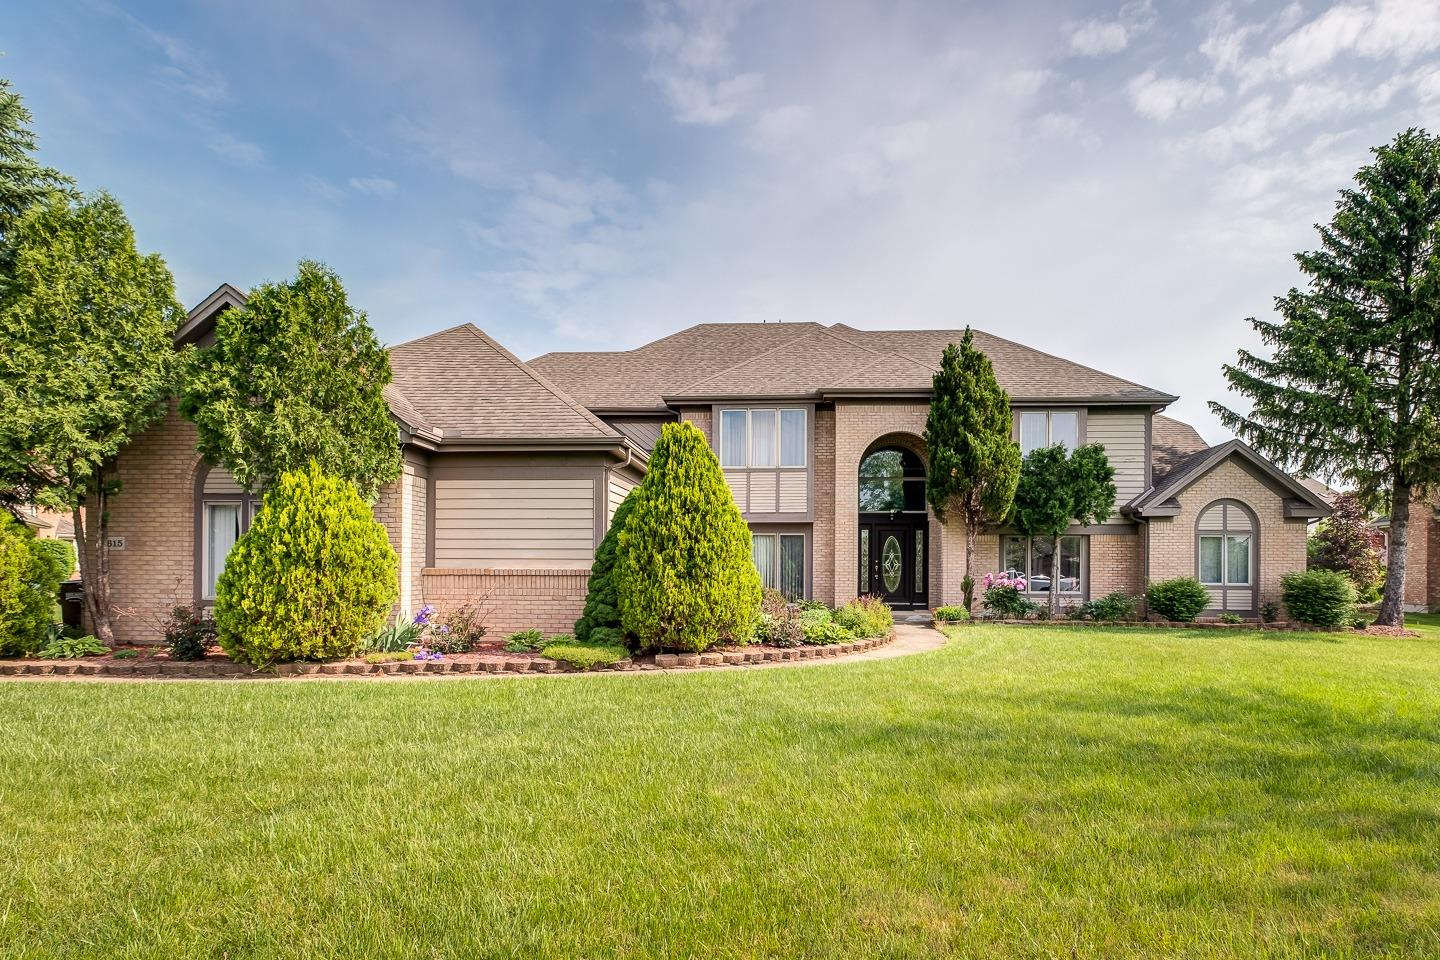 2615 Mountain Ash Ln Montgomery Co., OH